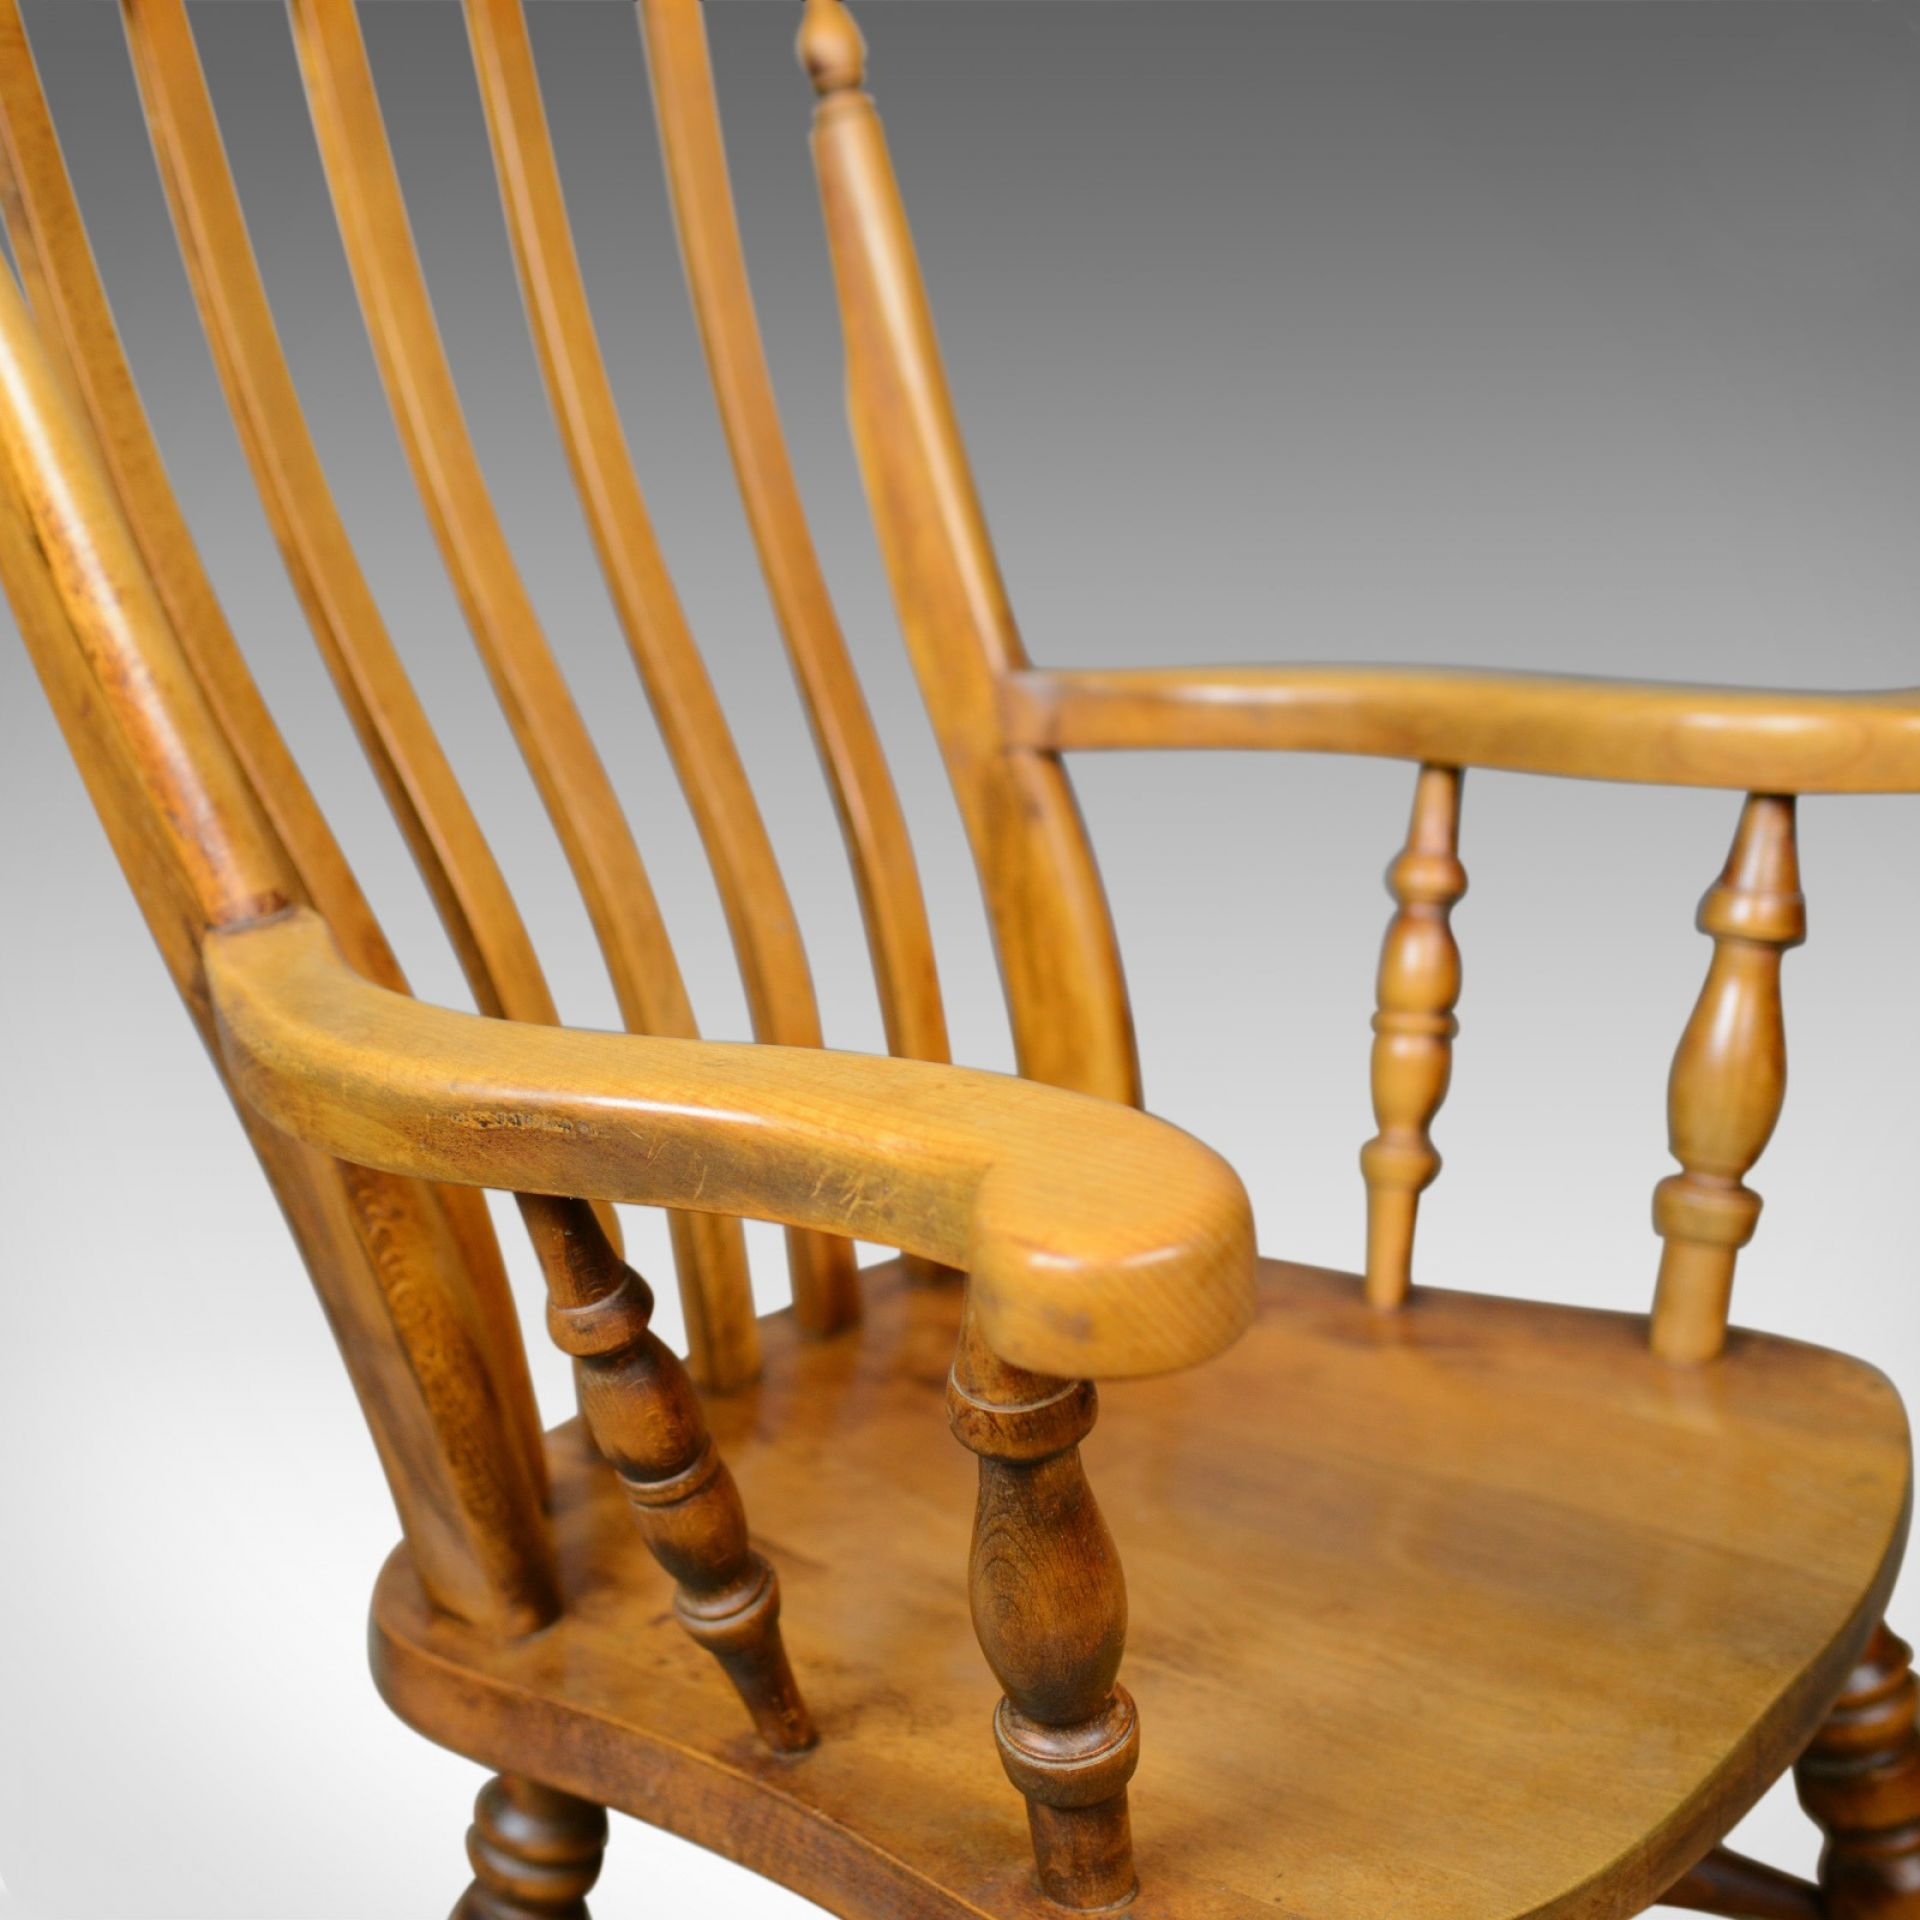 Antique Elbow Chair, English, Country Kitchen, Windsor Armchair, Early C20th